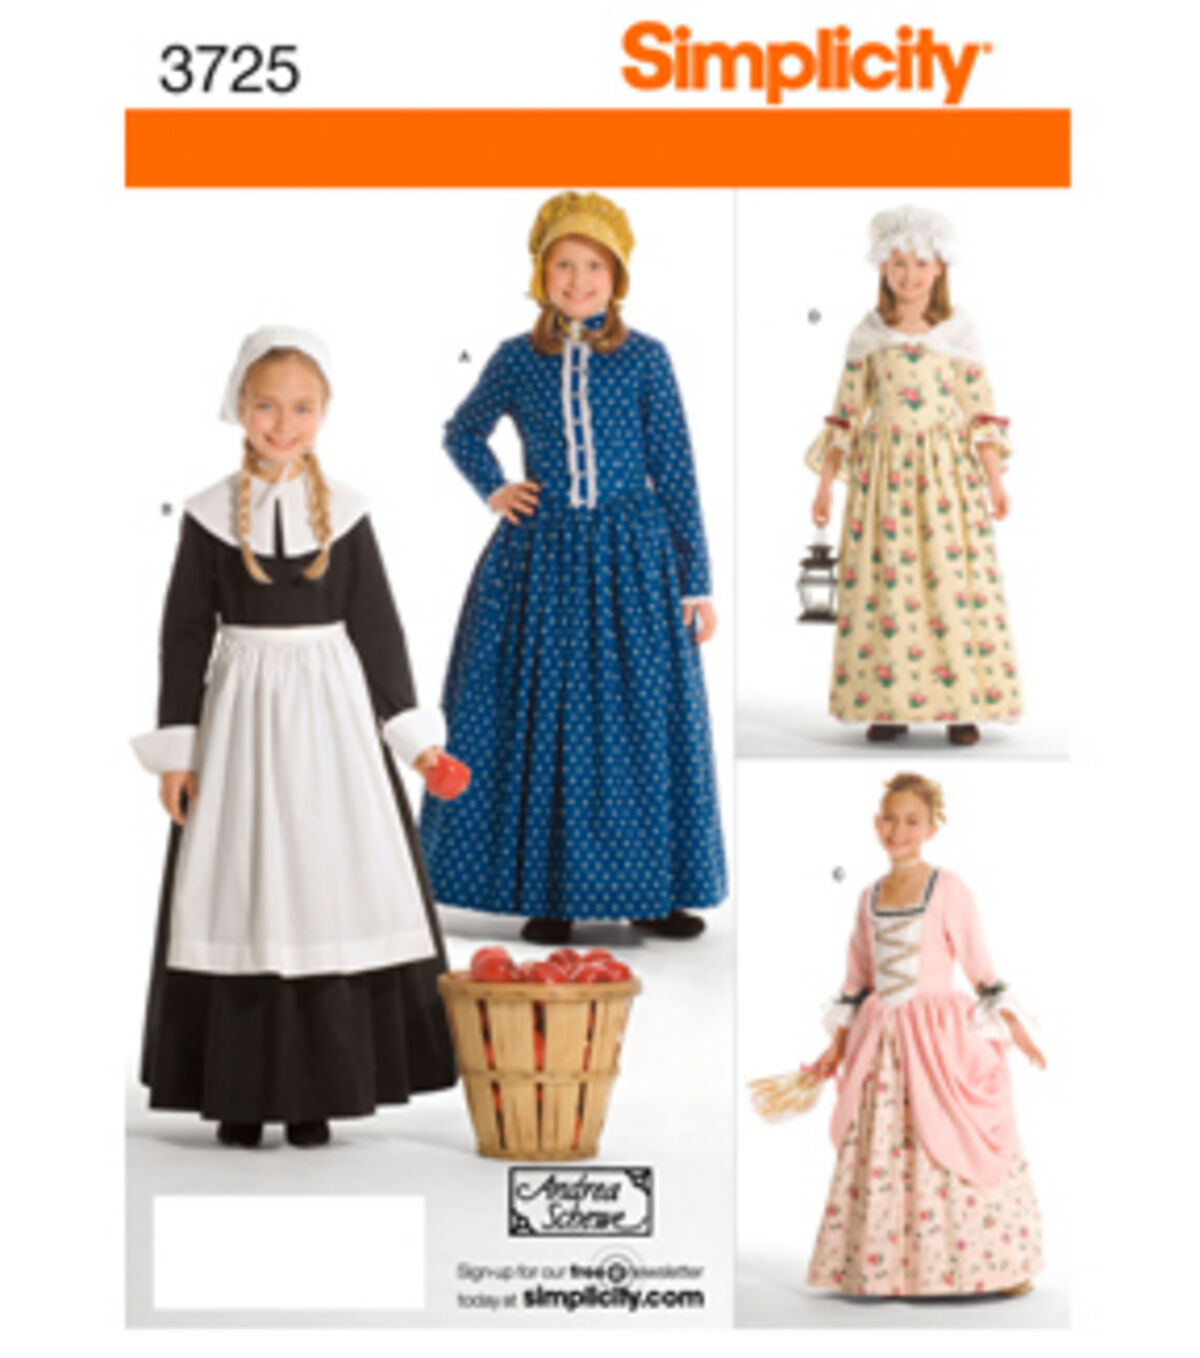 Victorian Kids Costumes & Shoes- Girls, Boys, Baby, Toddler Simplicity Pattern 3725K5 7 8 10 12 - Simplicit $10.79 AT vintagedancer.com